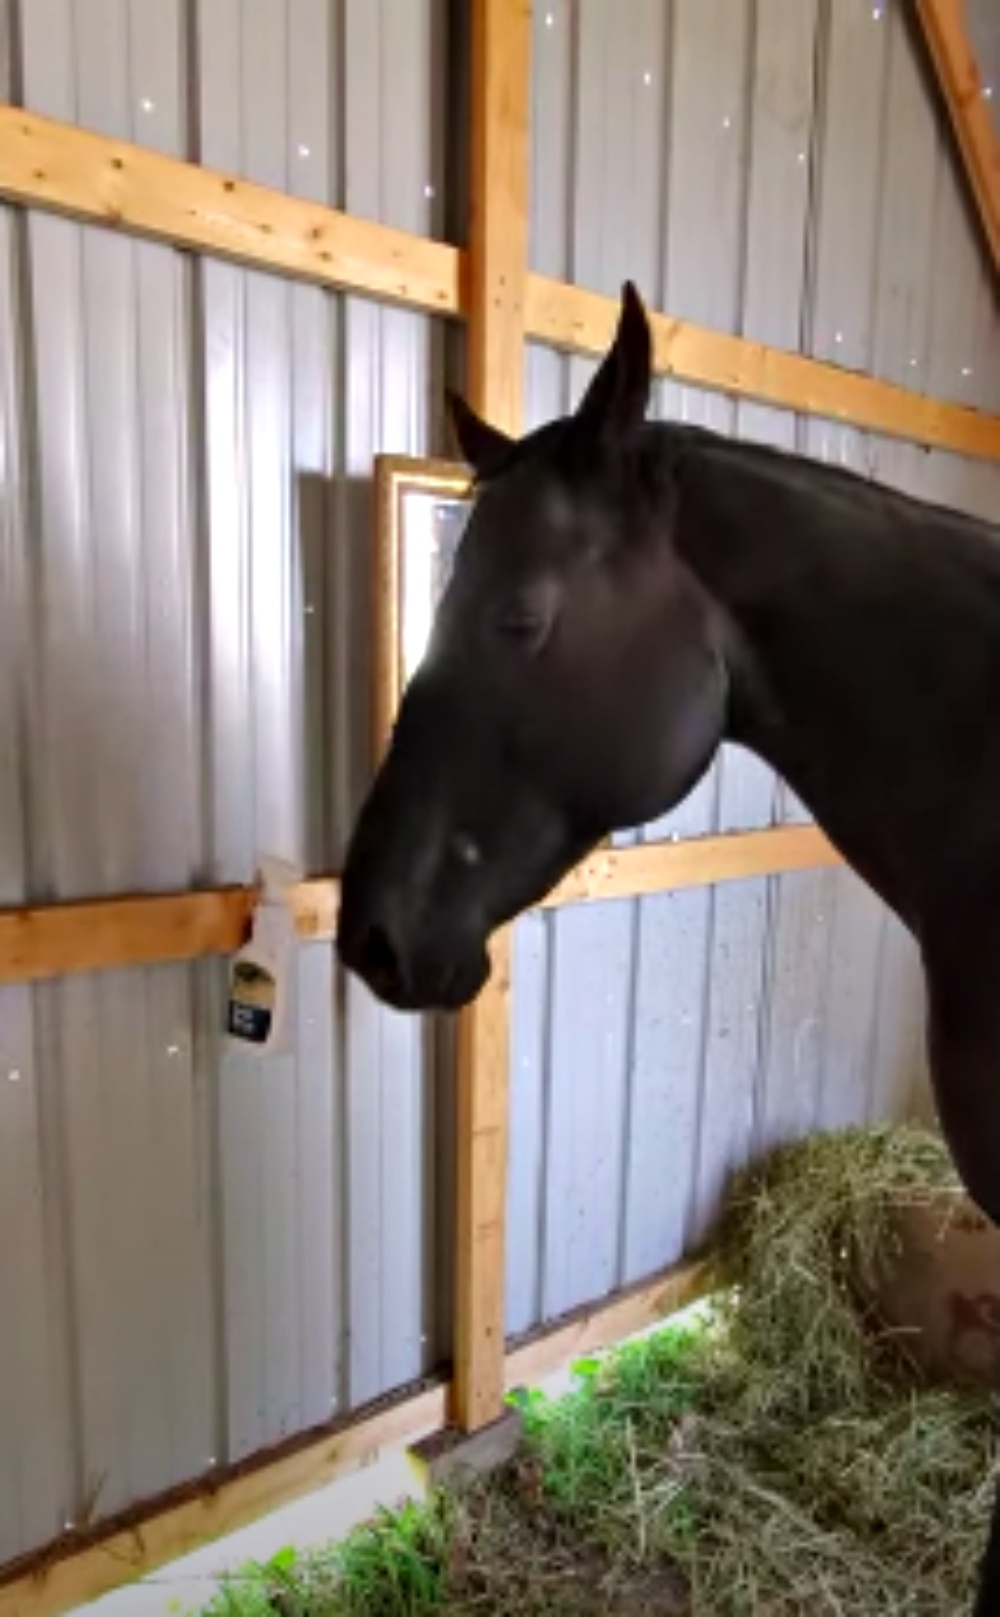 Horse Discovers Mirror For The First Time Making Owner Laugh Over Her Response